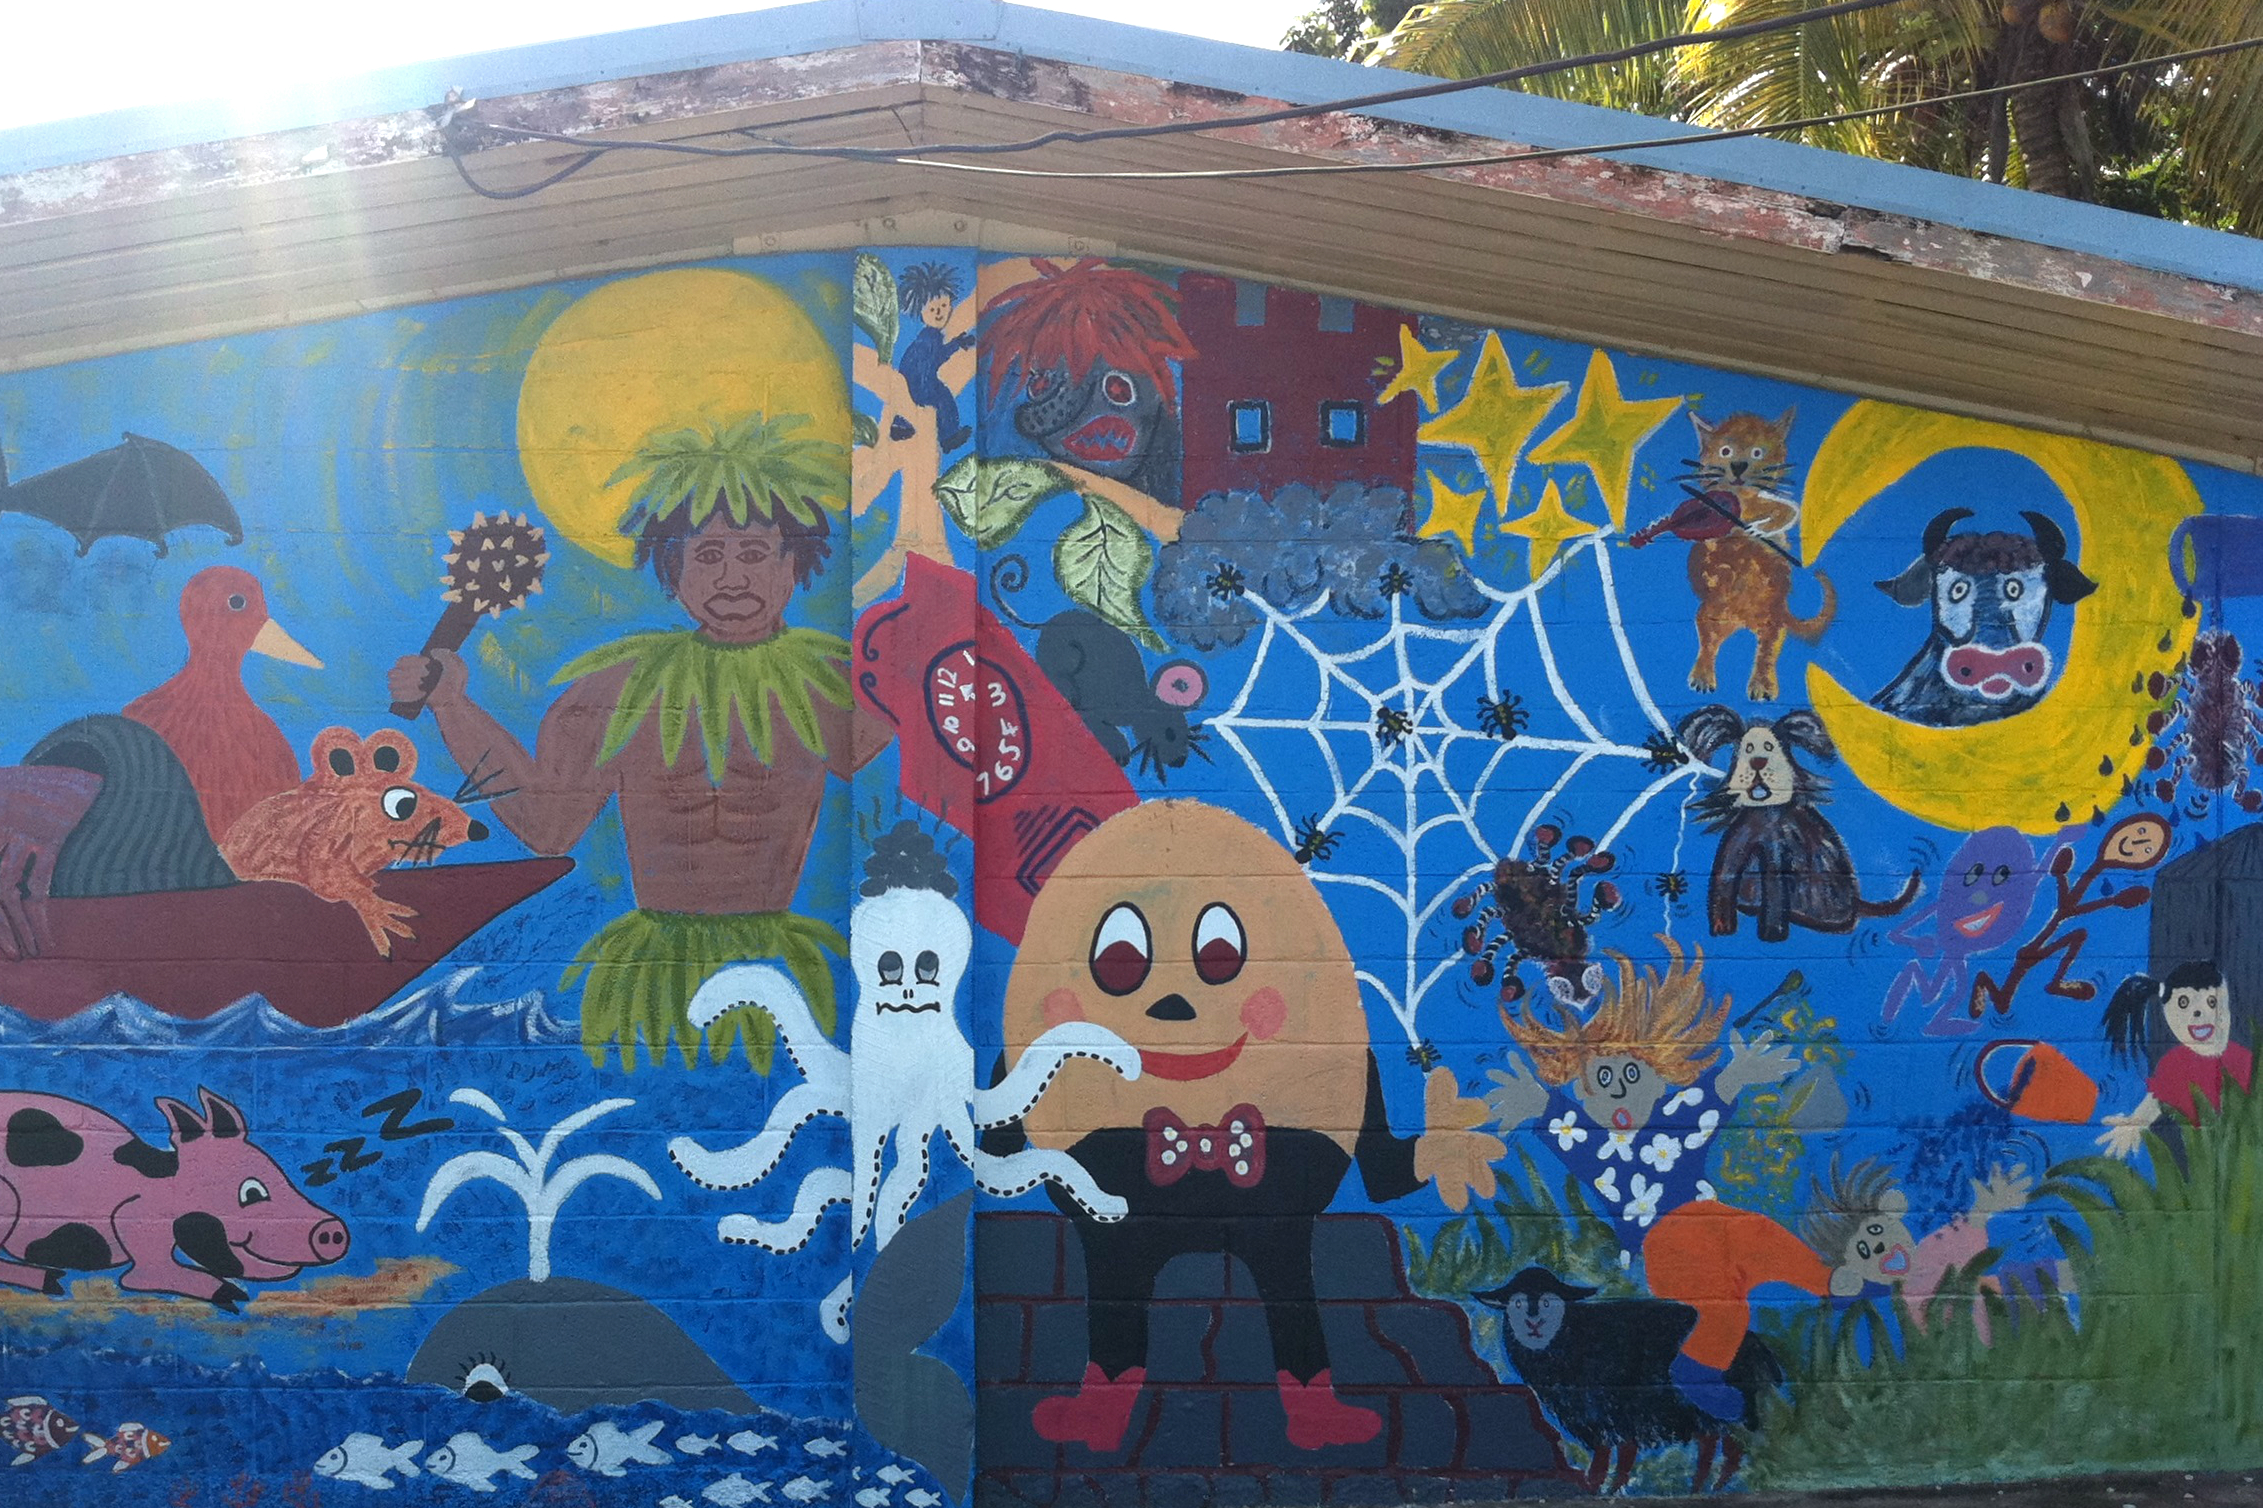 Cartoon Wall Murals File A Mural Painted On A Classroom Wall At Niue Primary